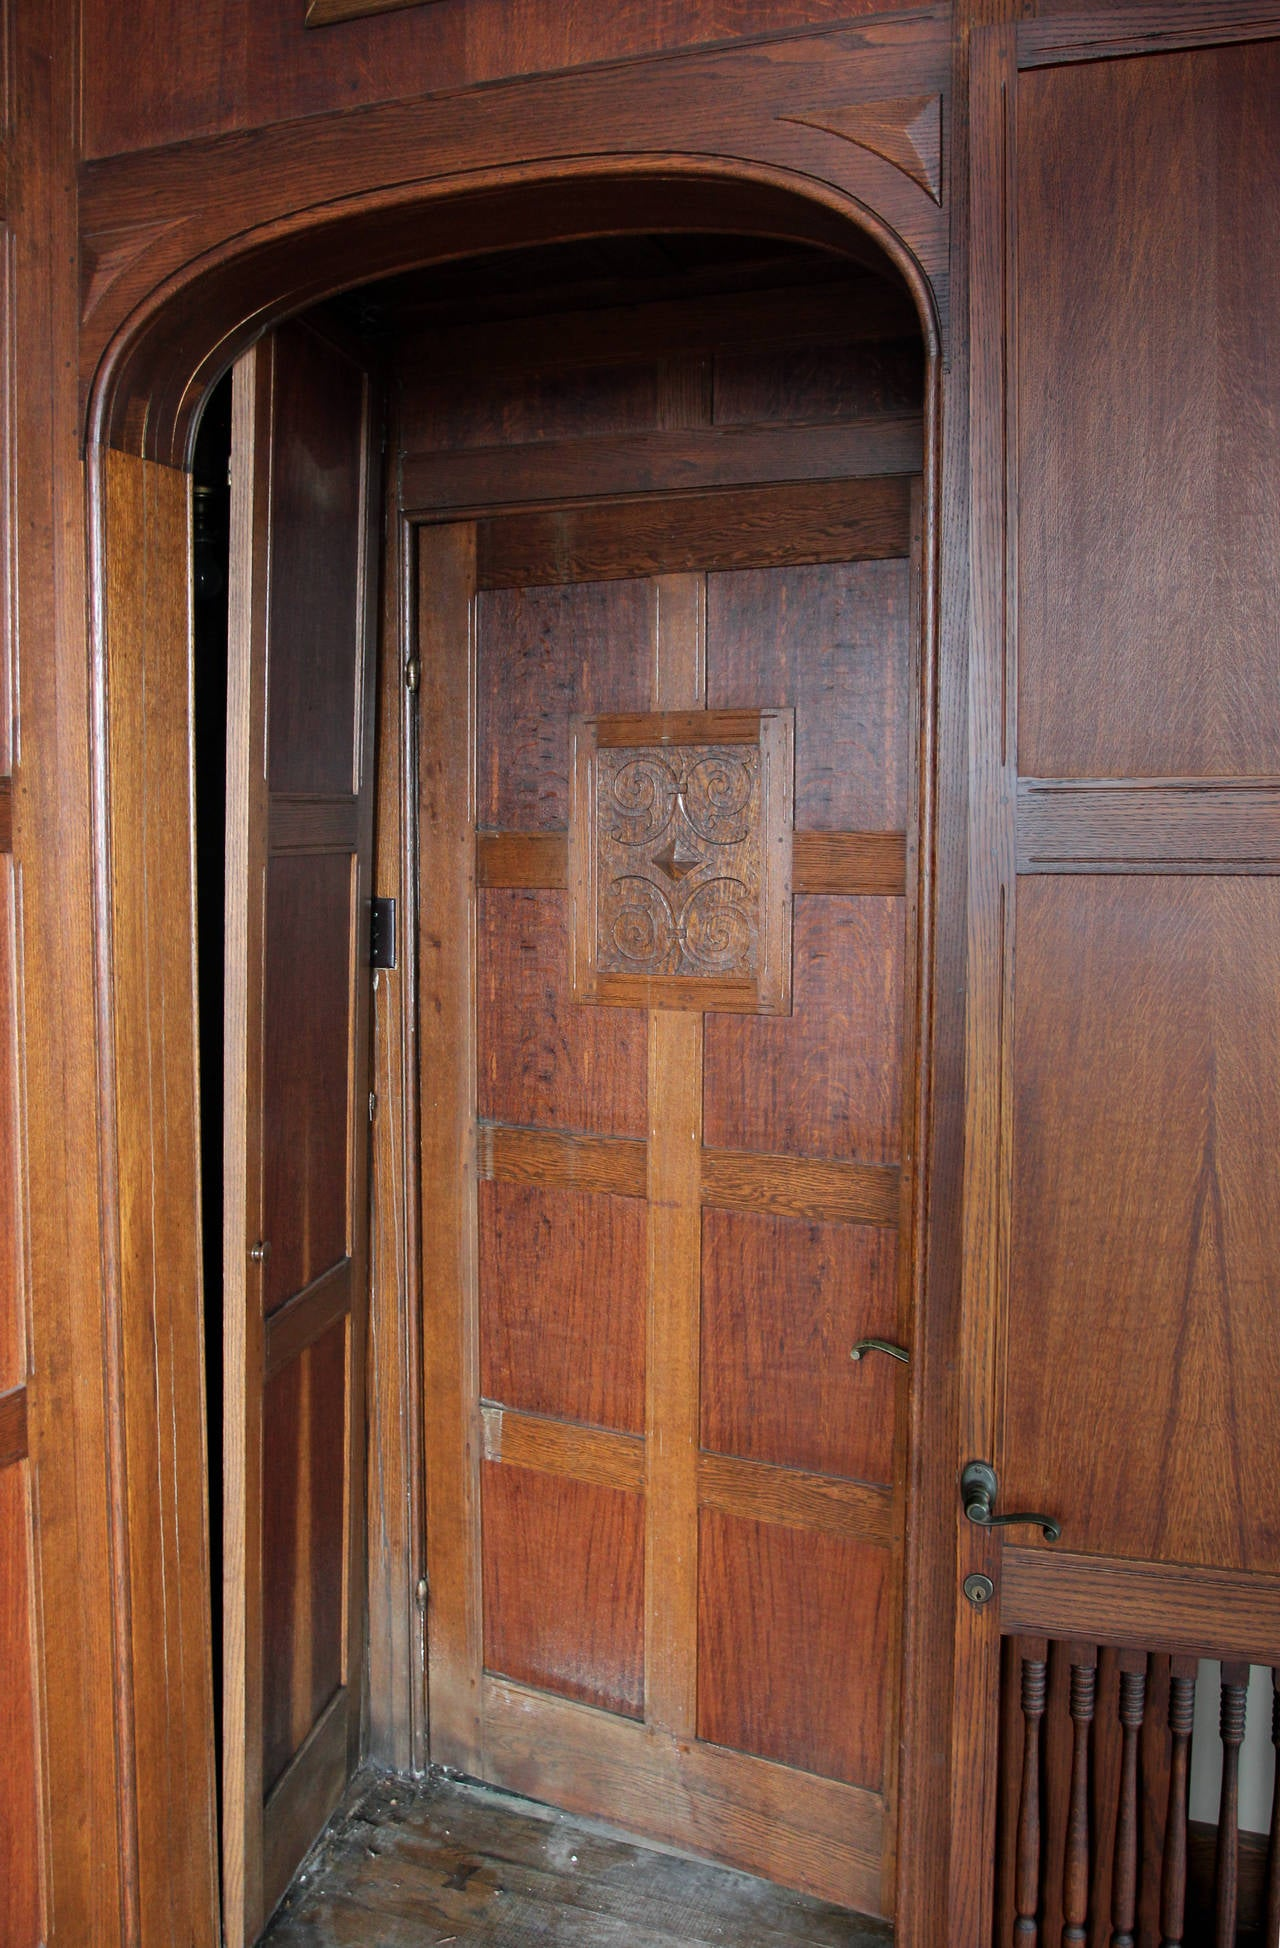 Panelled Room: 1905 Solid English Oak Paneled Room With Matching Door